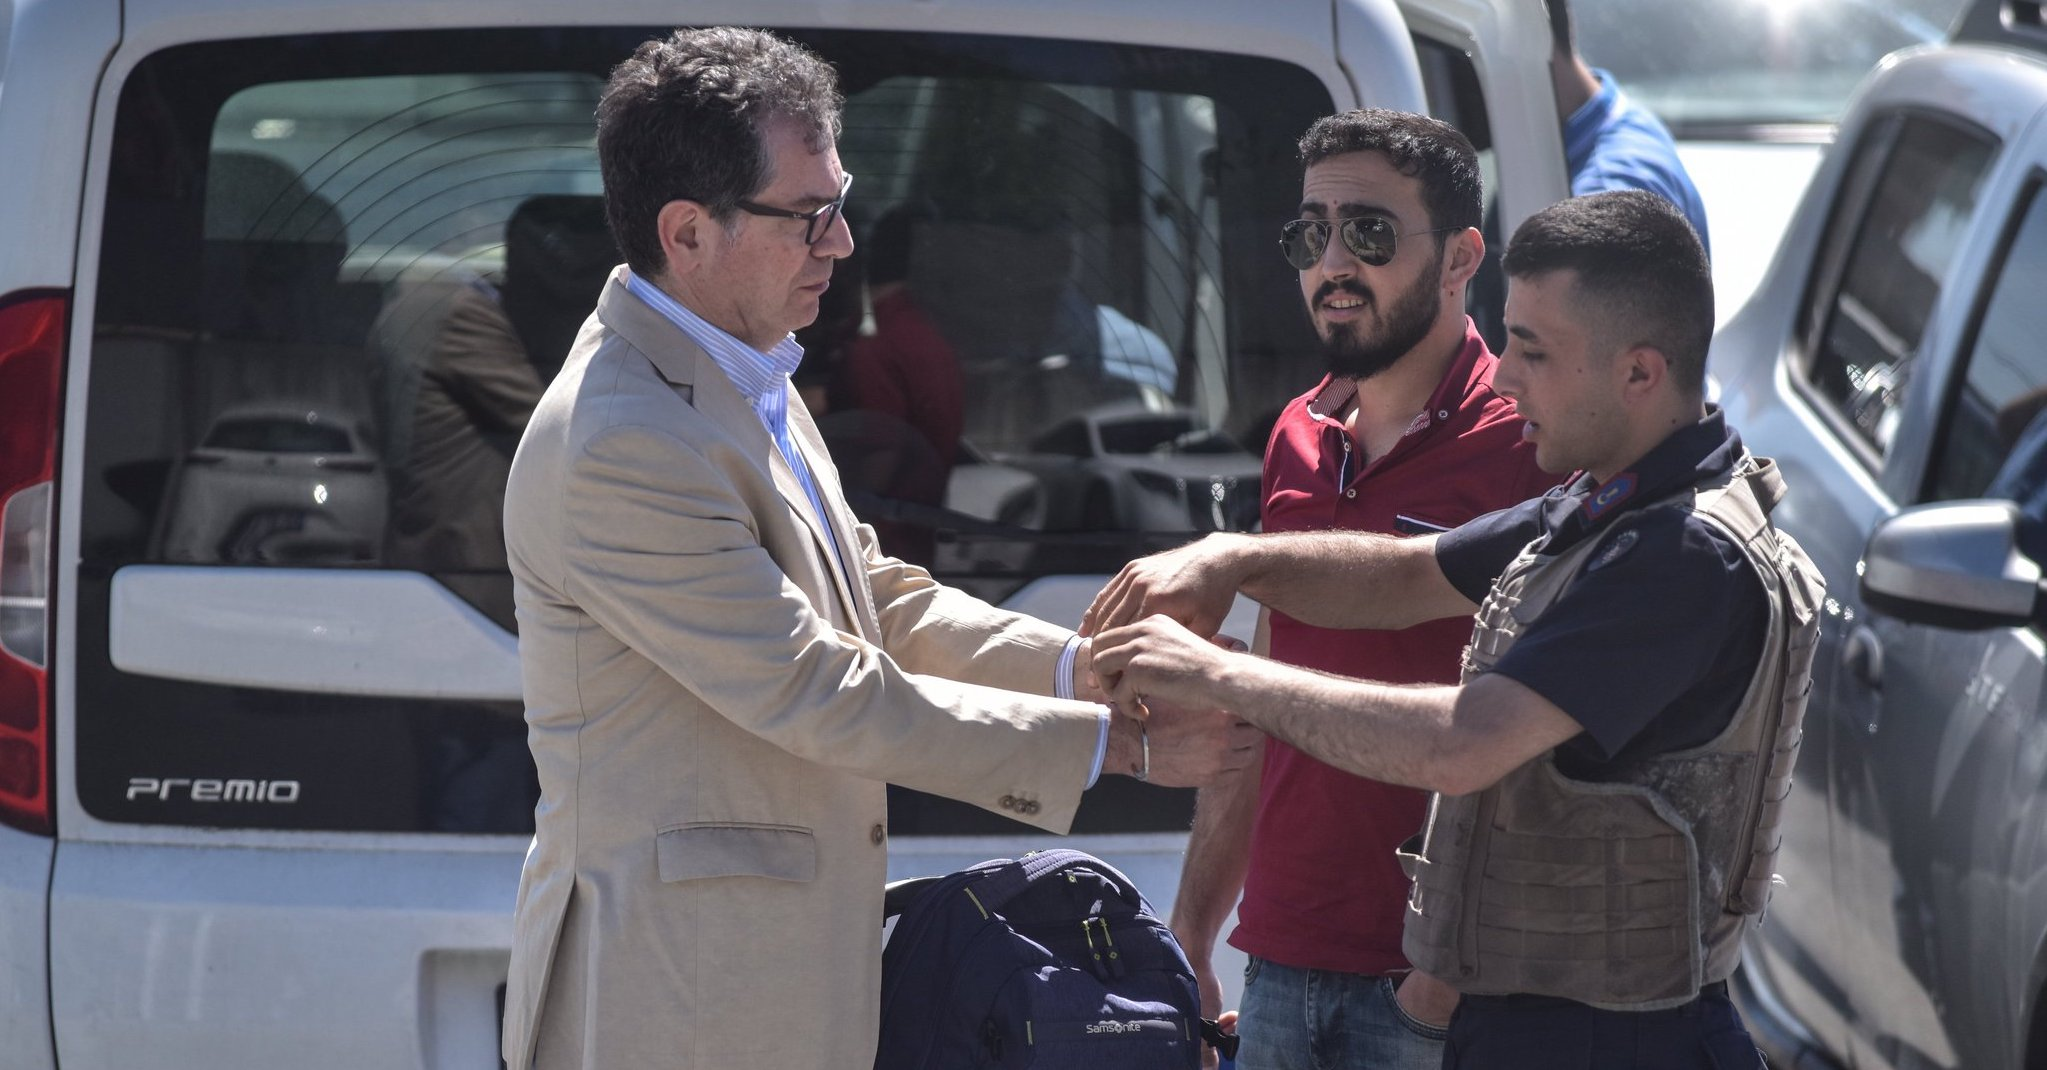 Kadri Gürsel freed after being locked up for 5 hours over upheld sentence